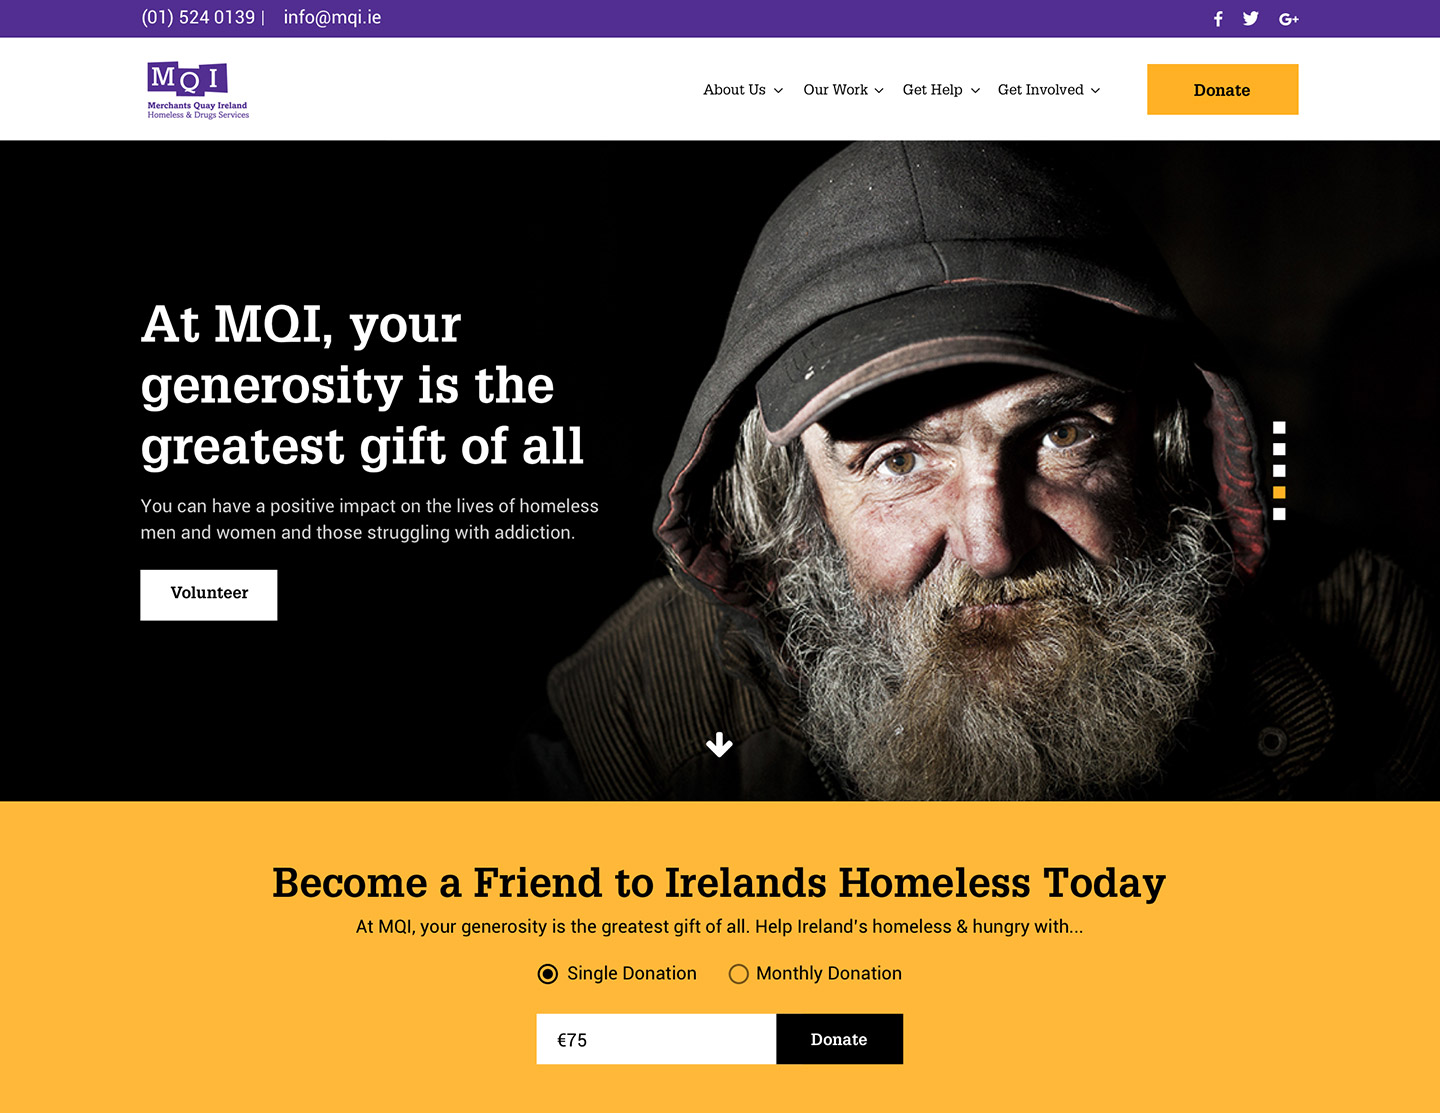 Merchants-Quay-Ireland-Charity-Web-Agency